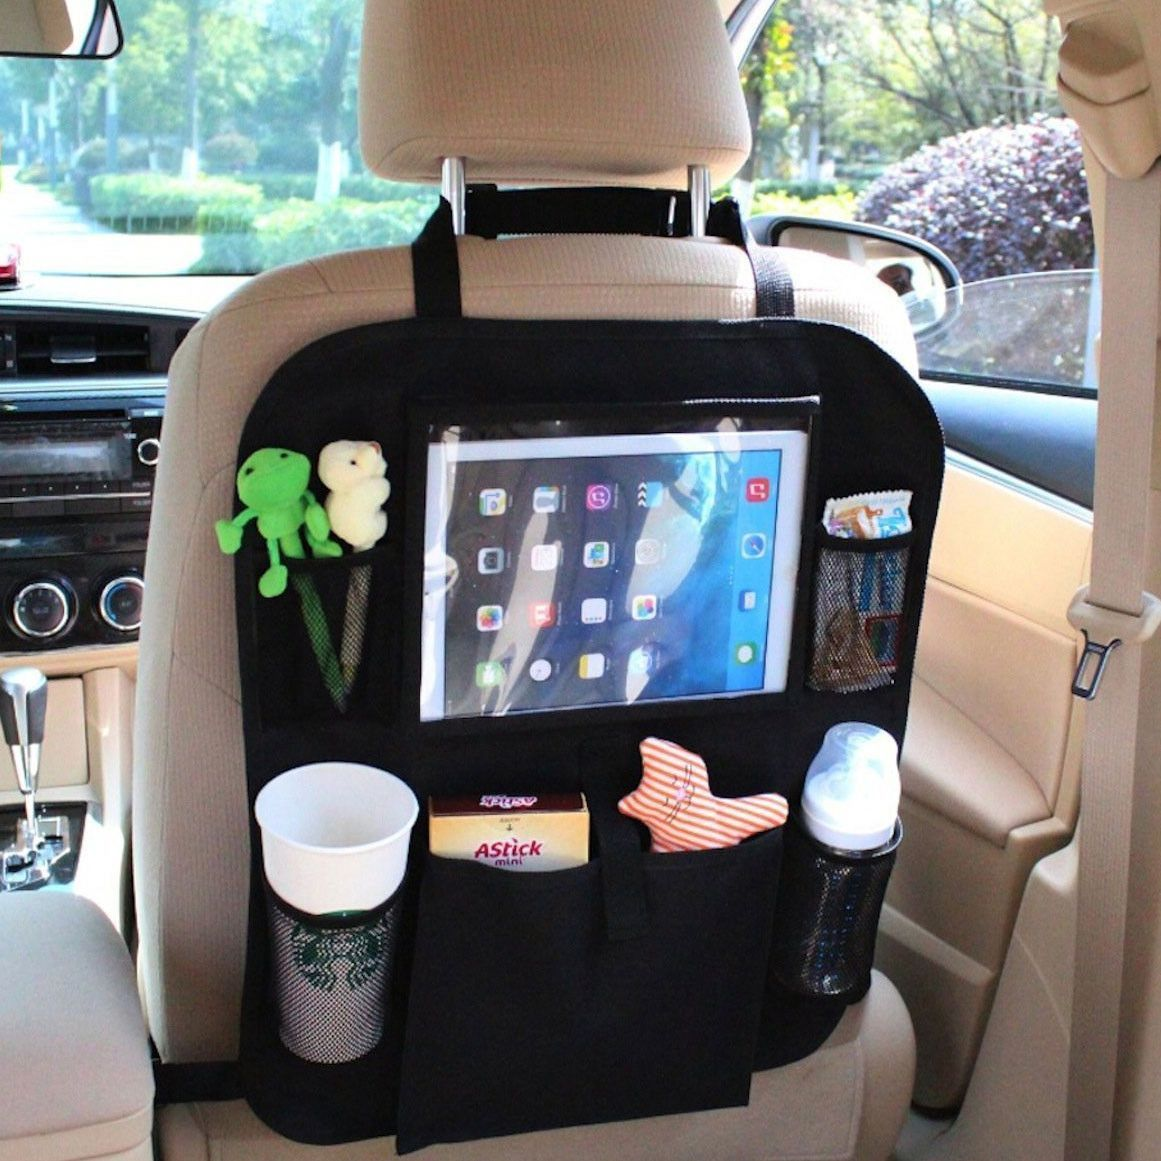 Car Organizer | Car organizers, Cleaning cars and Cars